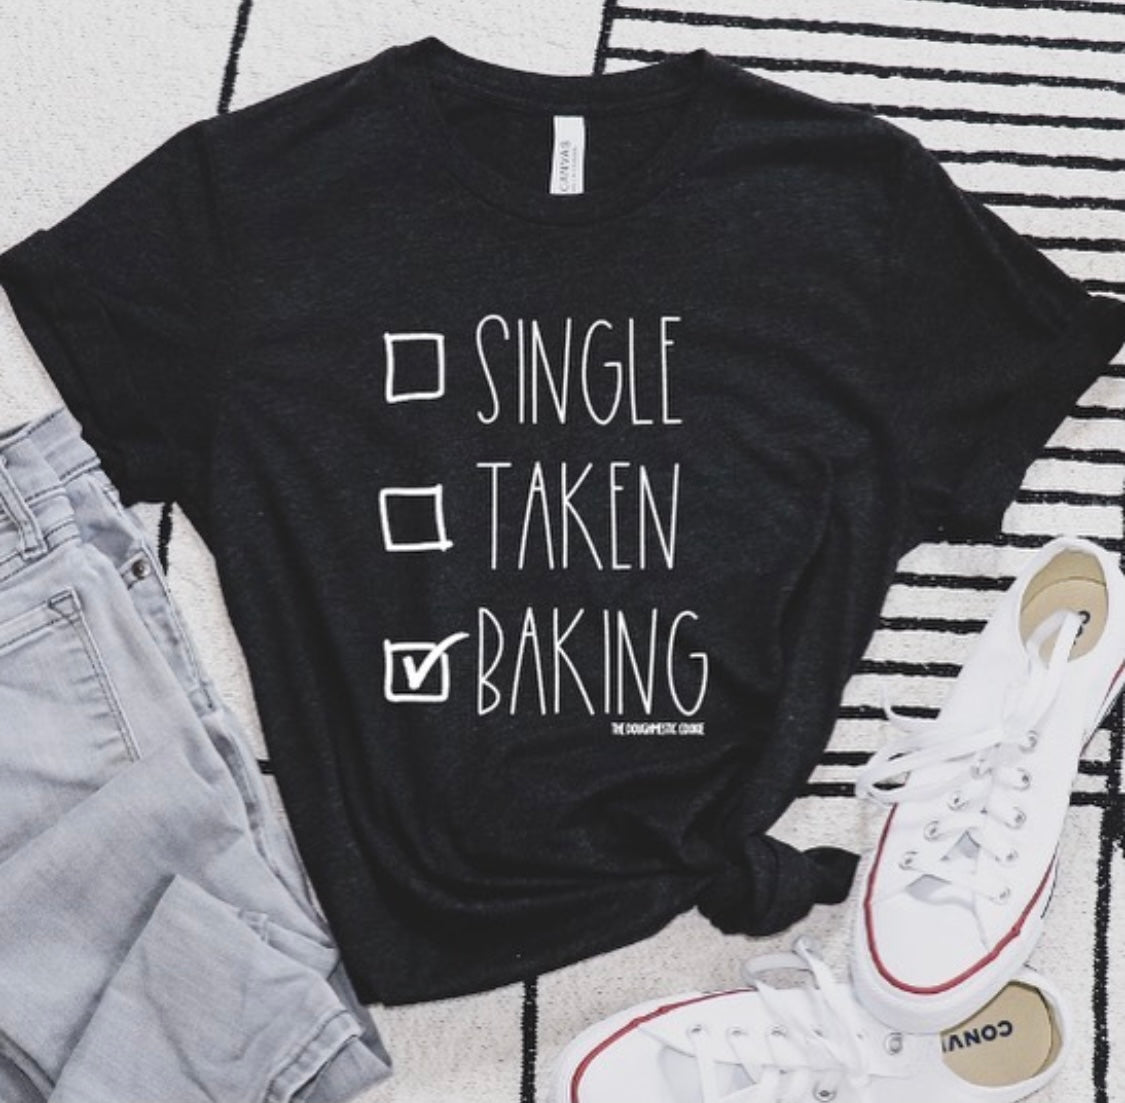 SINGLE TAKEN BAKING Tee Black